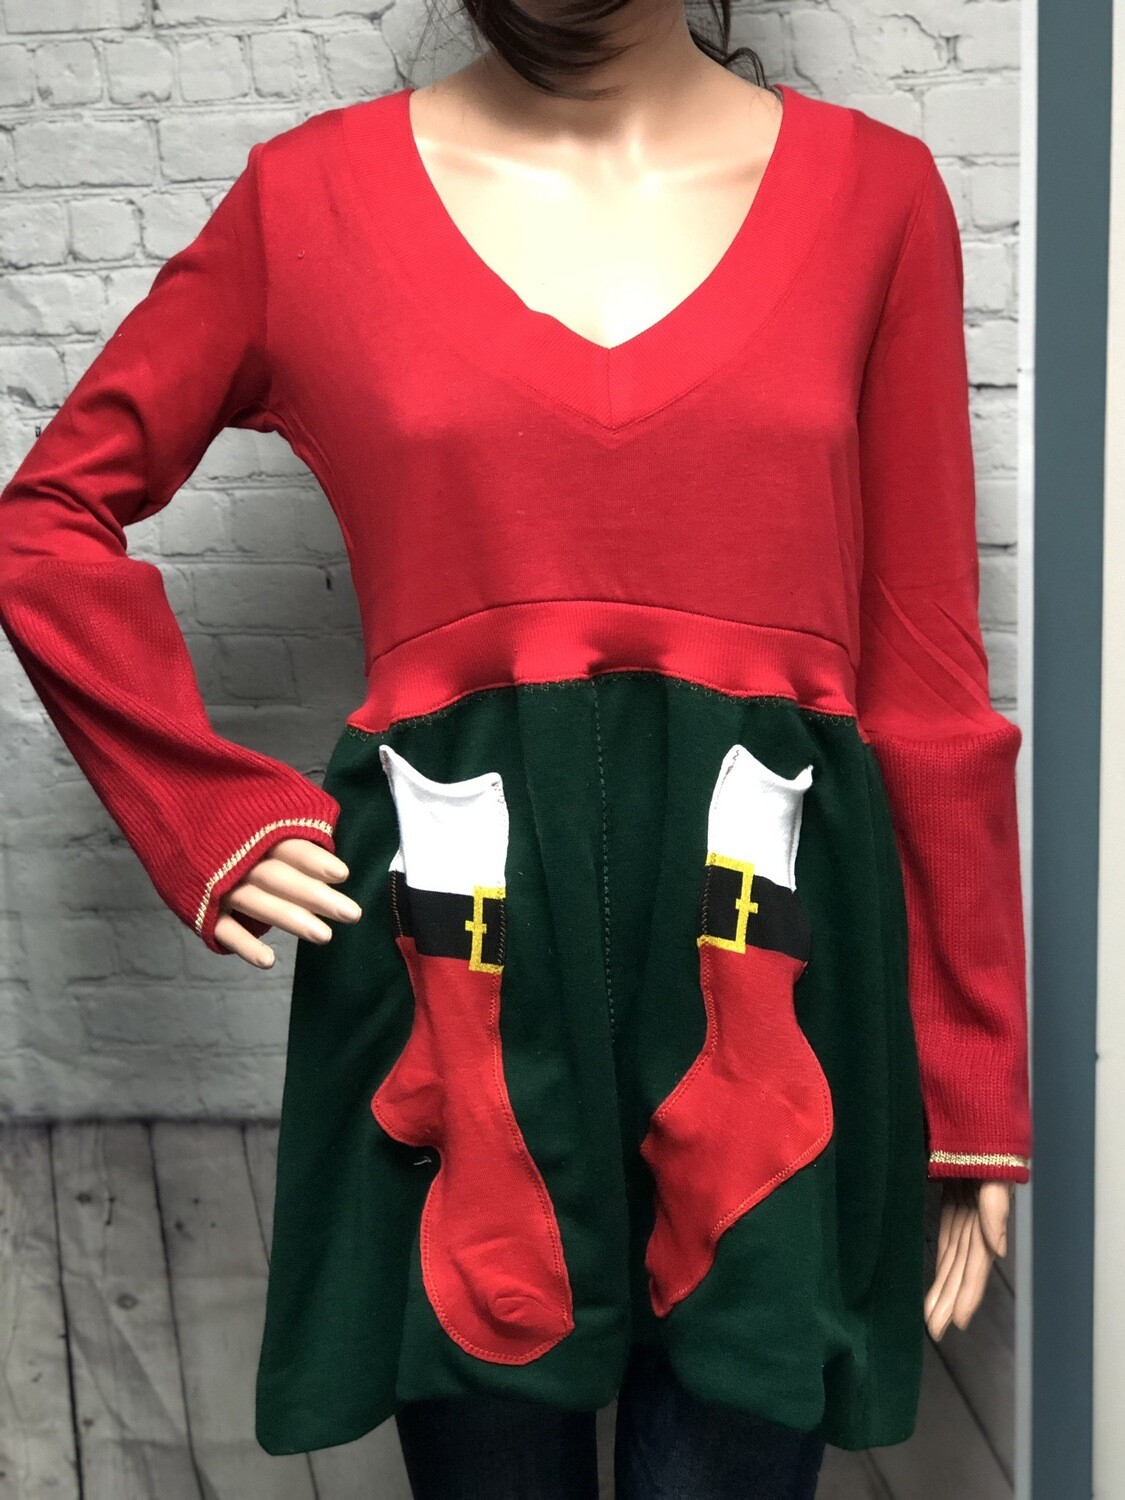 S Threads Boutique Upcycled Christmas Sweater Refashion w Sock Pockets Size Medium